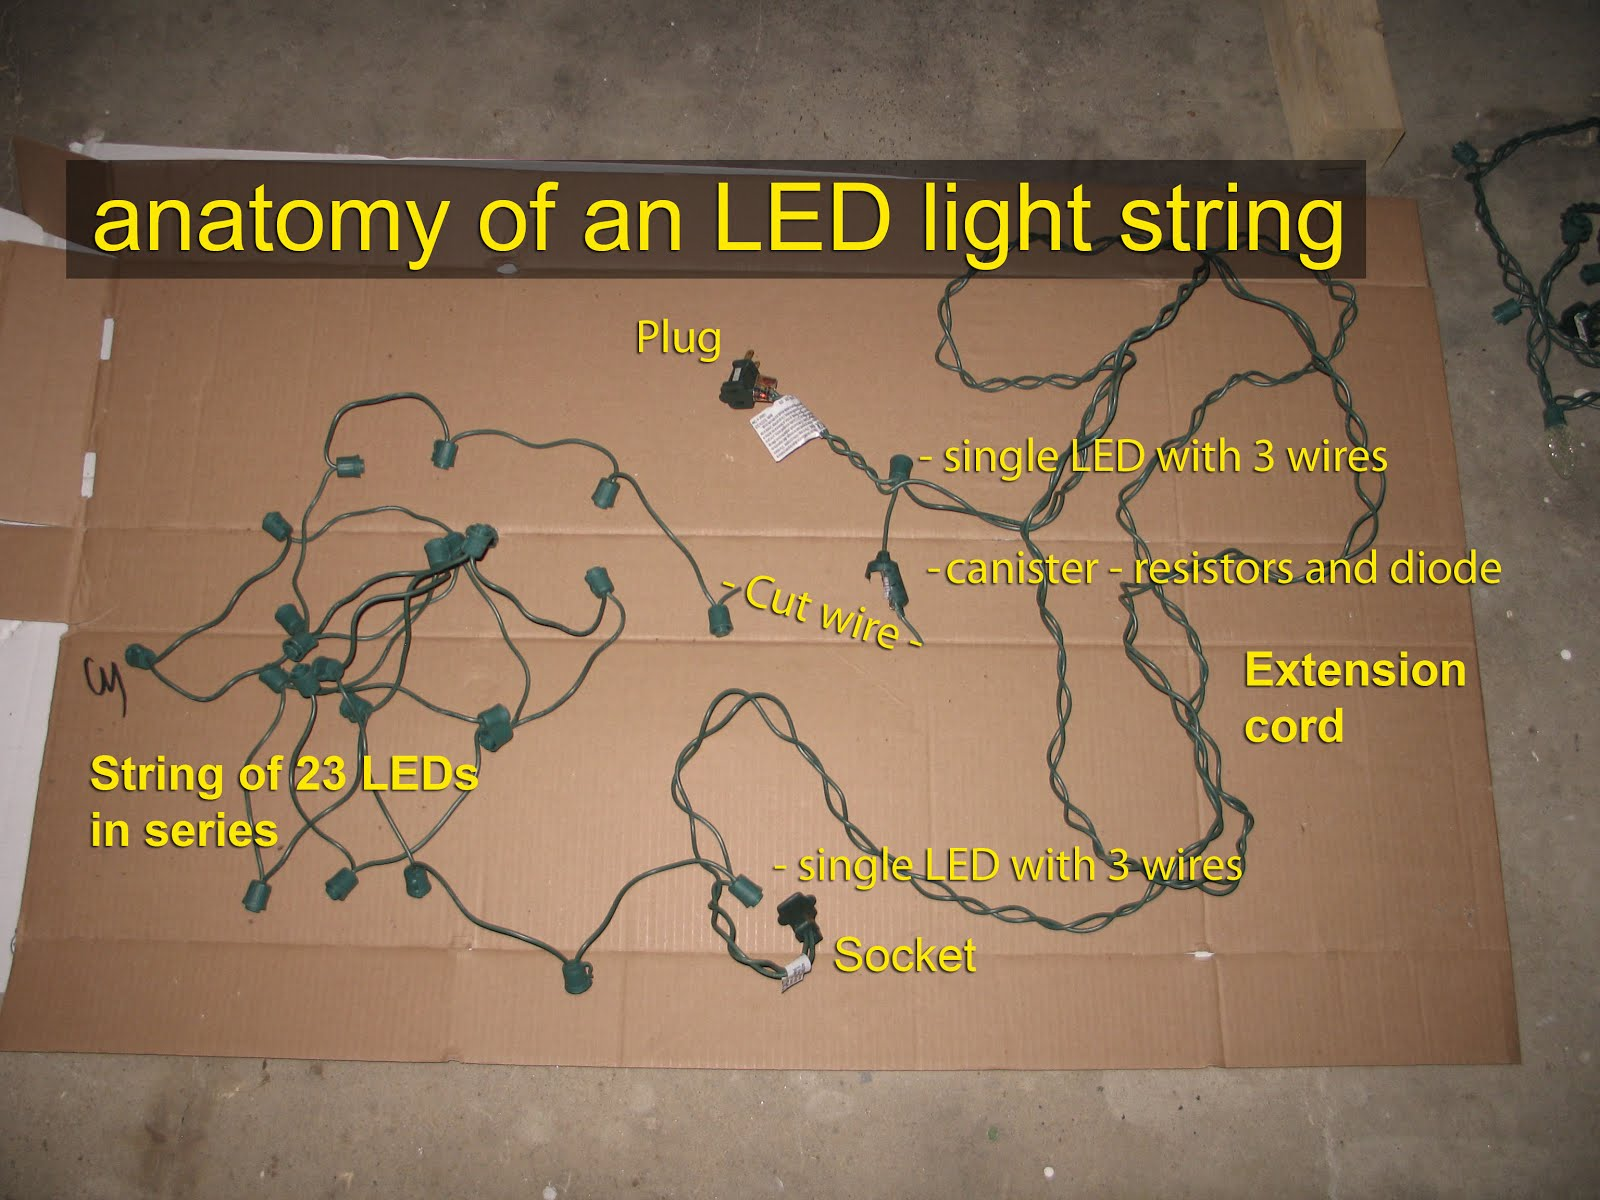 led-light-string-anatomy1 Xmas Lights Wiring Diagram on string lights wiring diagram, xmas lights safety, xmas lights frame, xmas lights forum, xmas lights battery, pool lights wiring diagram, christmas lights wiring diagram, icicle lights wiring diagram, xmas lights circuit, xmas lights fuse, rope lights wiring diagram, xmas lights troubleshooting,